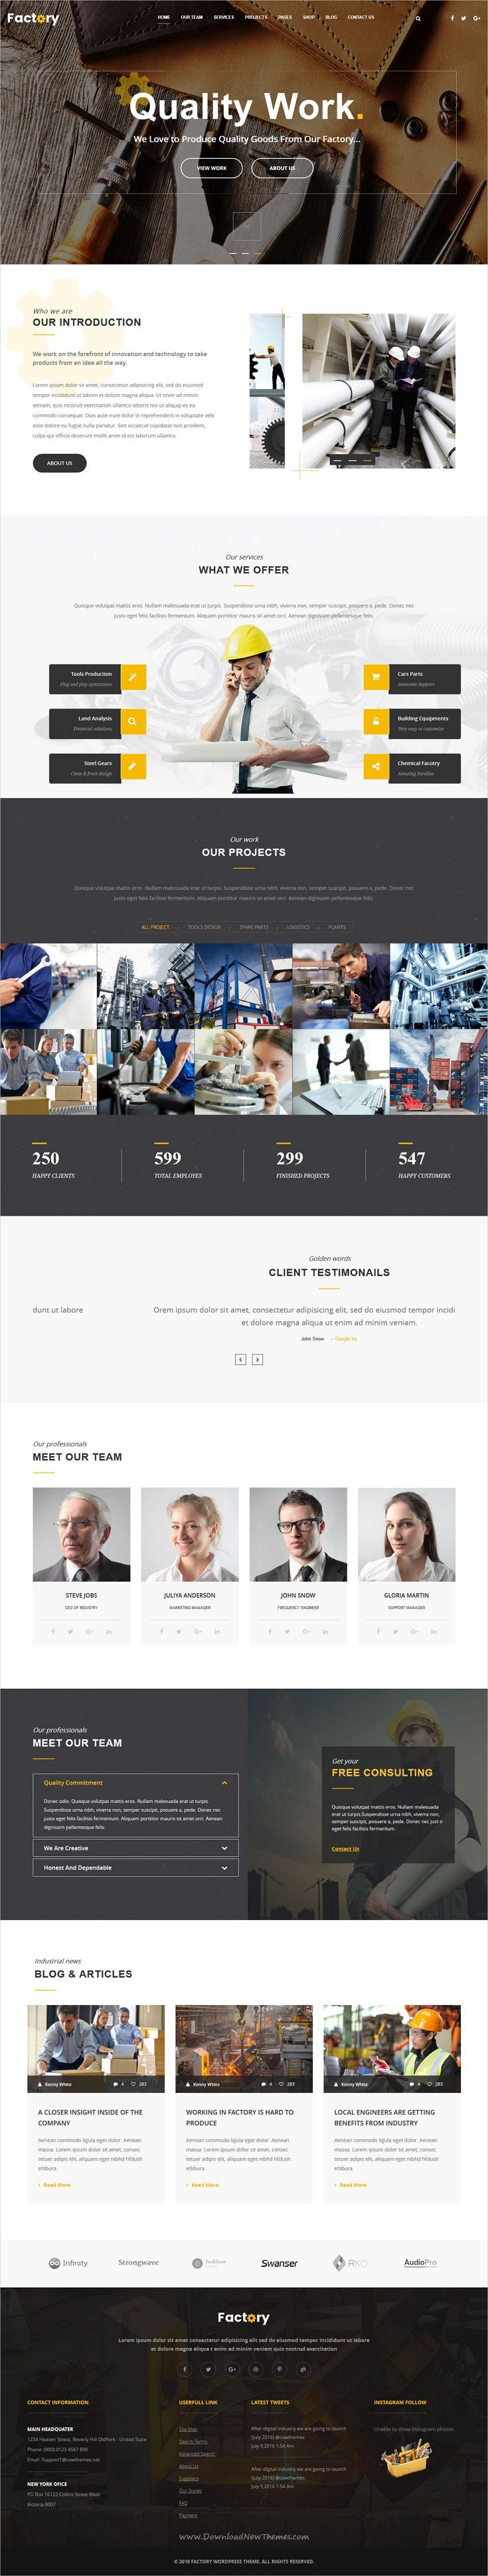 Industrial is clean and modern design responsive #HTML bootstrap template for #factory, industry and #construction companies website download now ➩ https://themeforest.net/item/industrial-factory-industry-construction-html-template/19753291?ref=Datasata